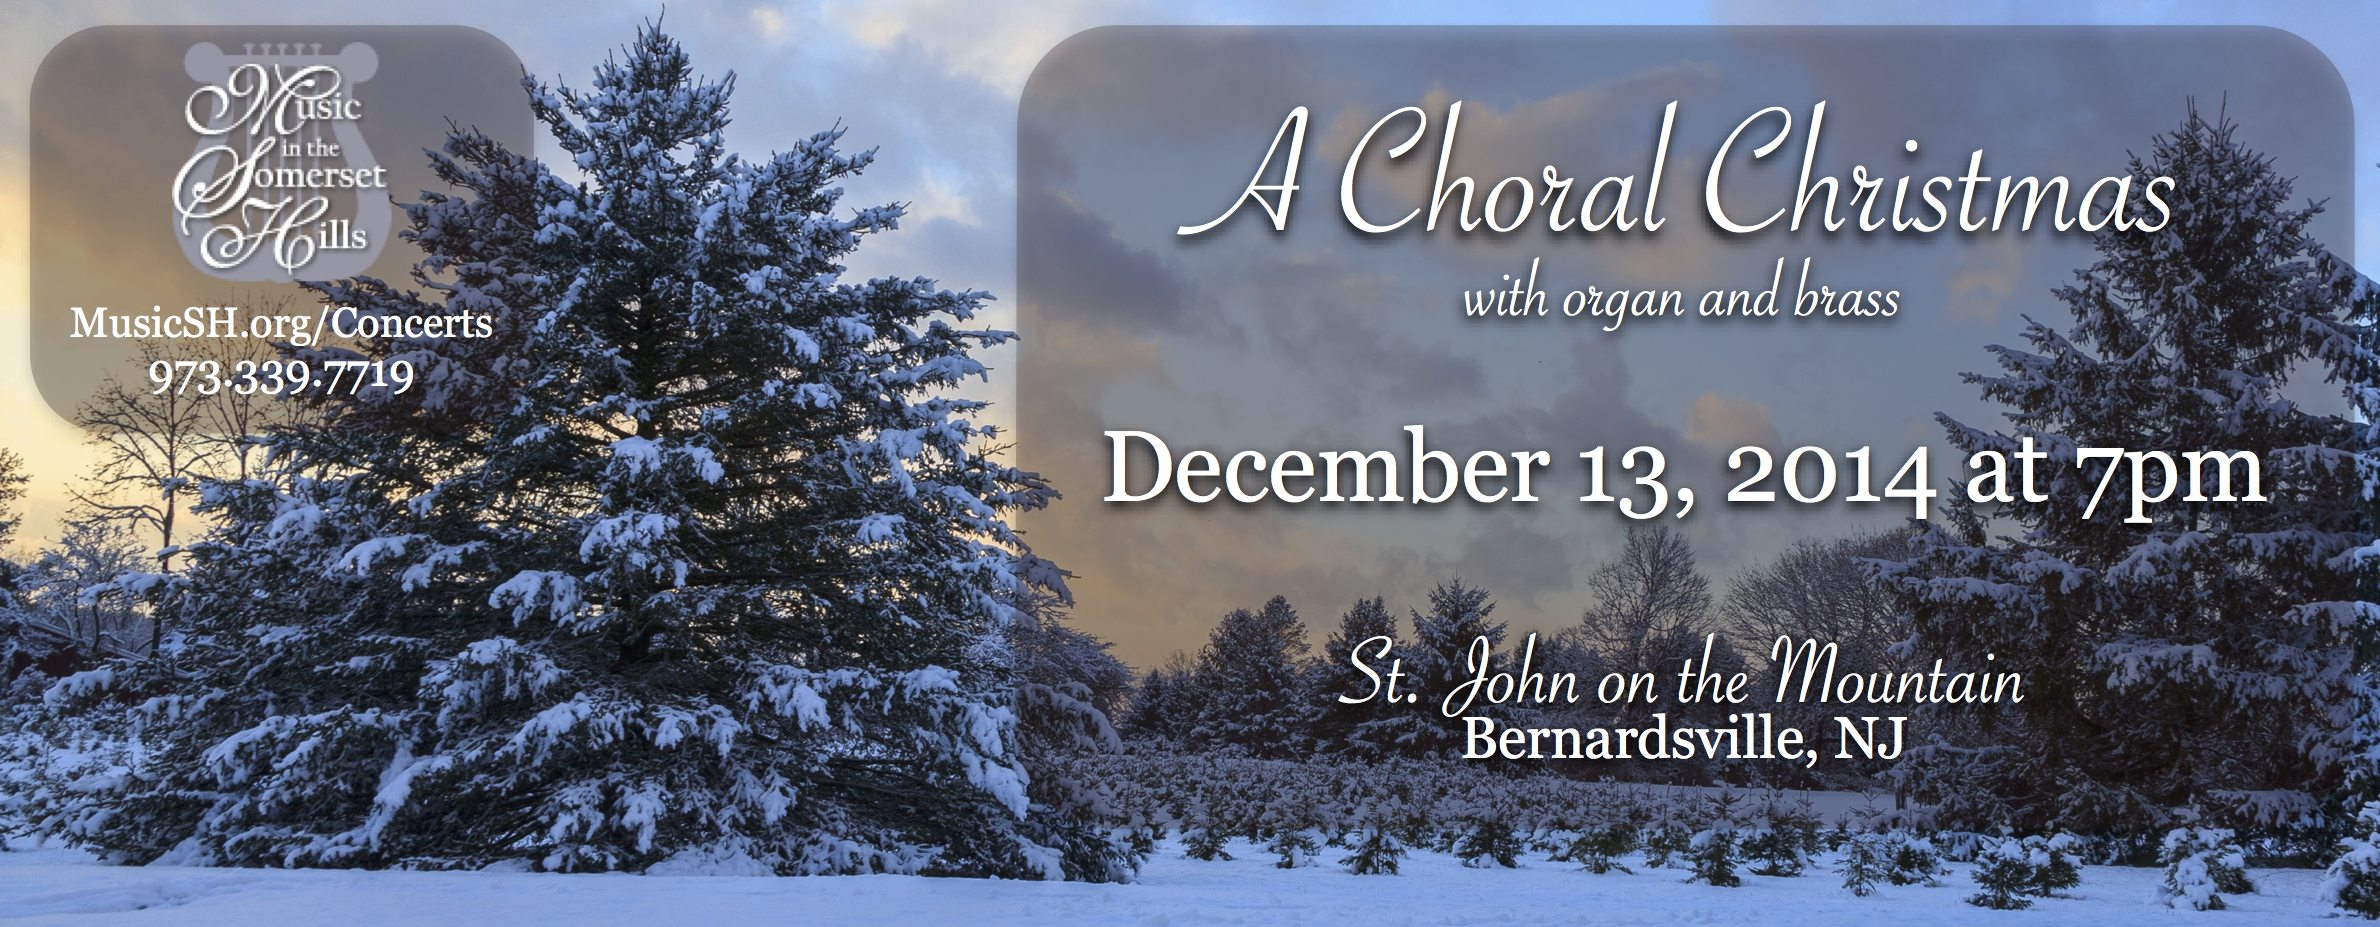 Tickets for A Choral Christmas with Organ and Brass in Bernardsville from ShowClix